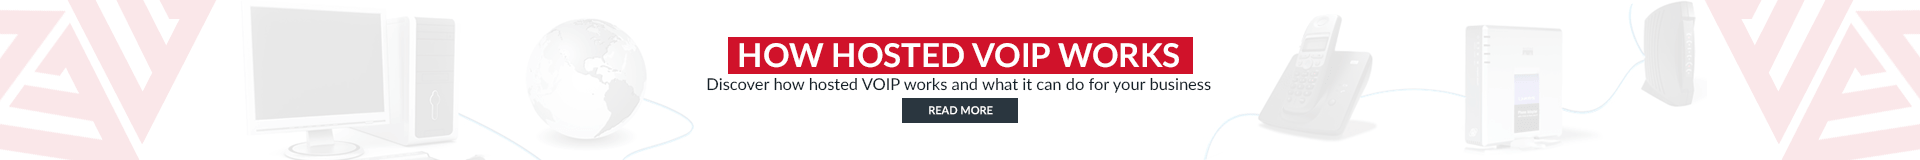 Find out how VOIP telephone systems work and see how it could benefit your business